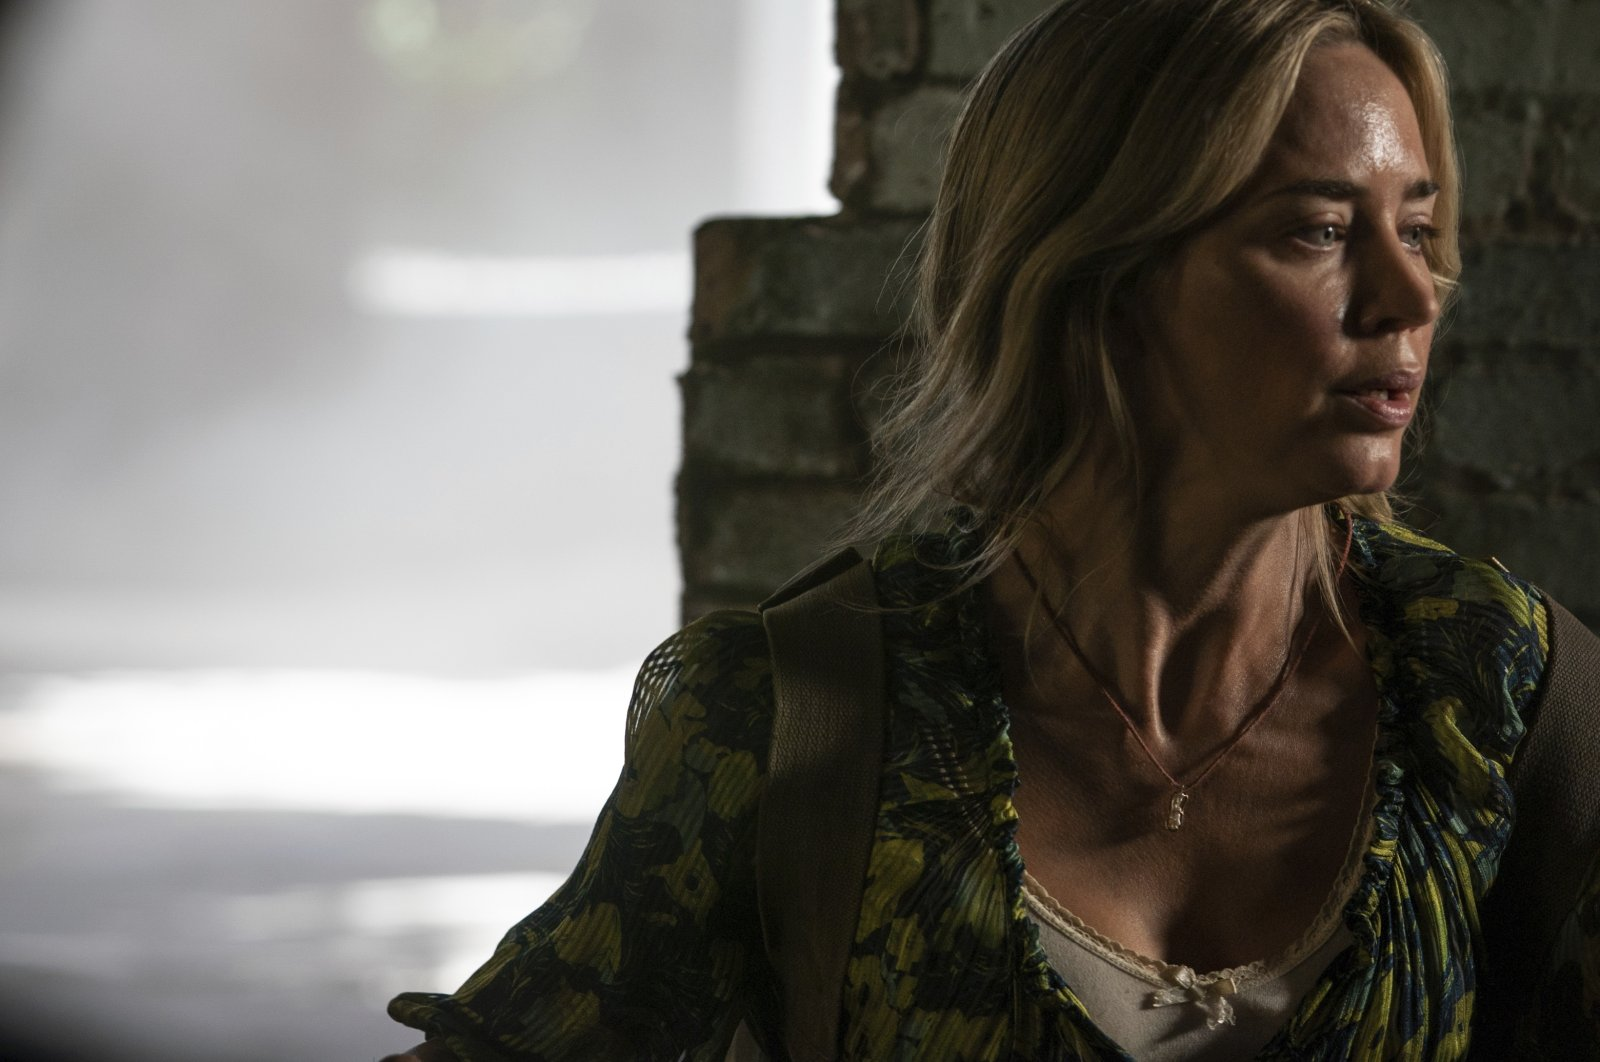 """Actress Emily Blunt looks stressed in a scene from """"A Quiet Place Part II."""" (Paramount Pictures via AP)"""